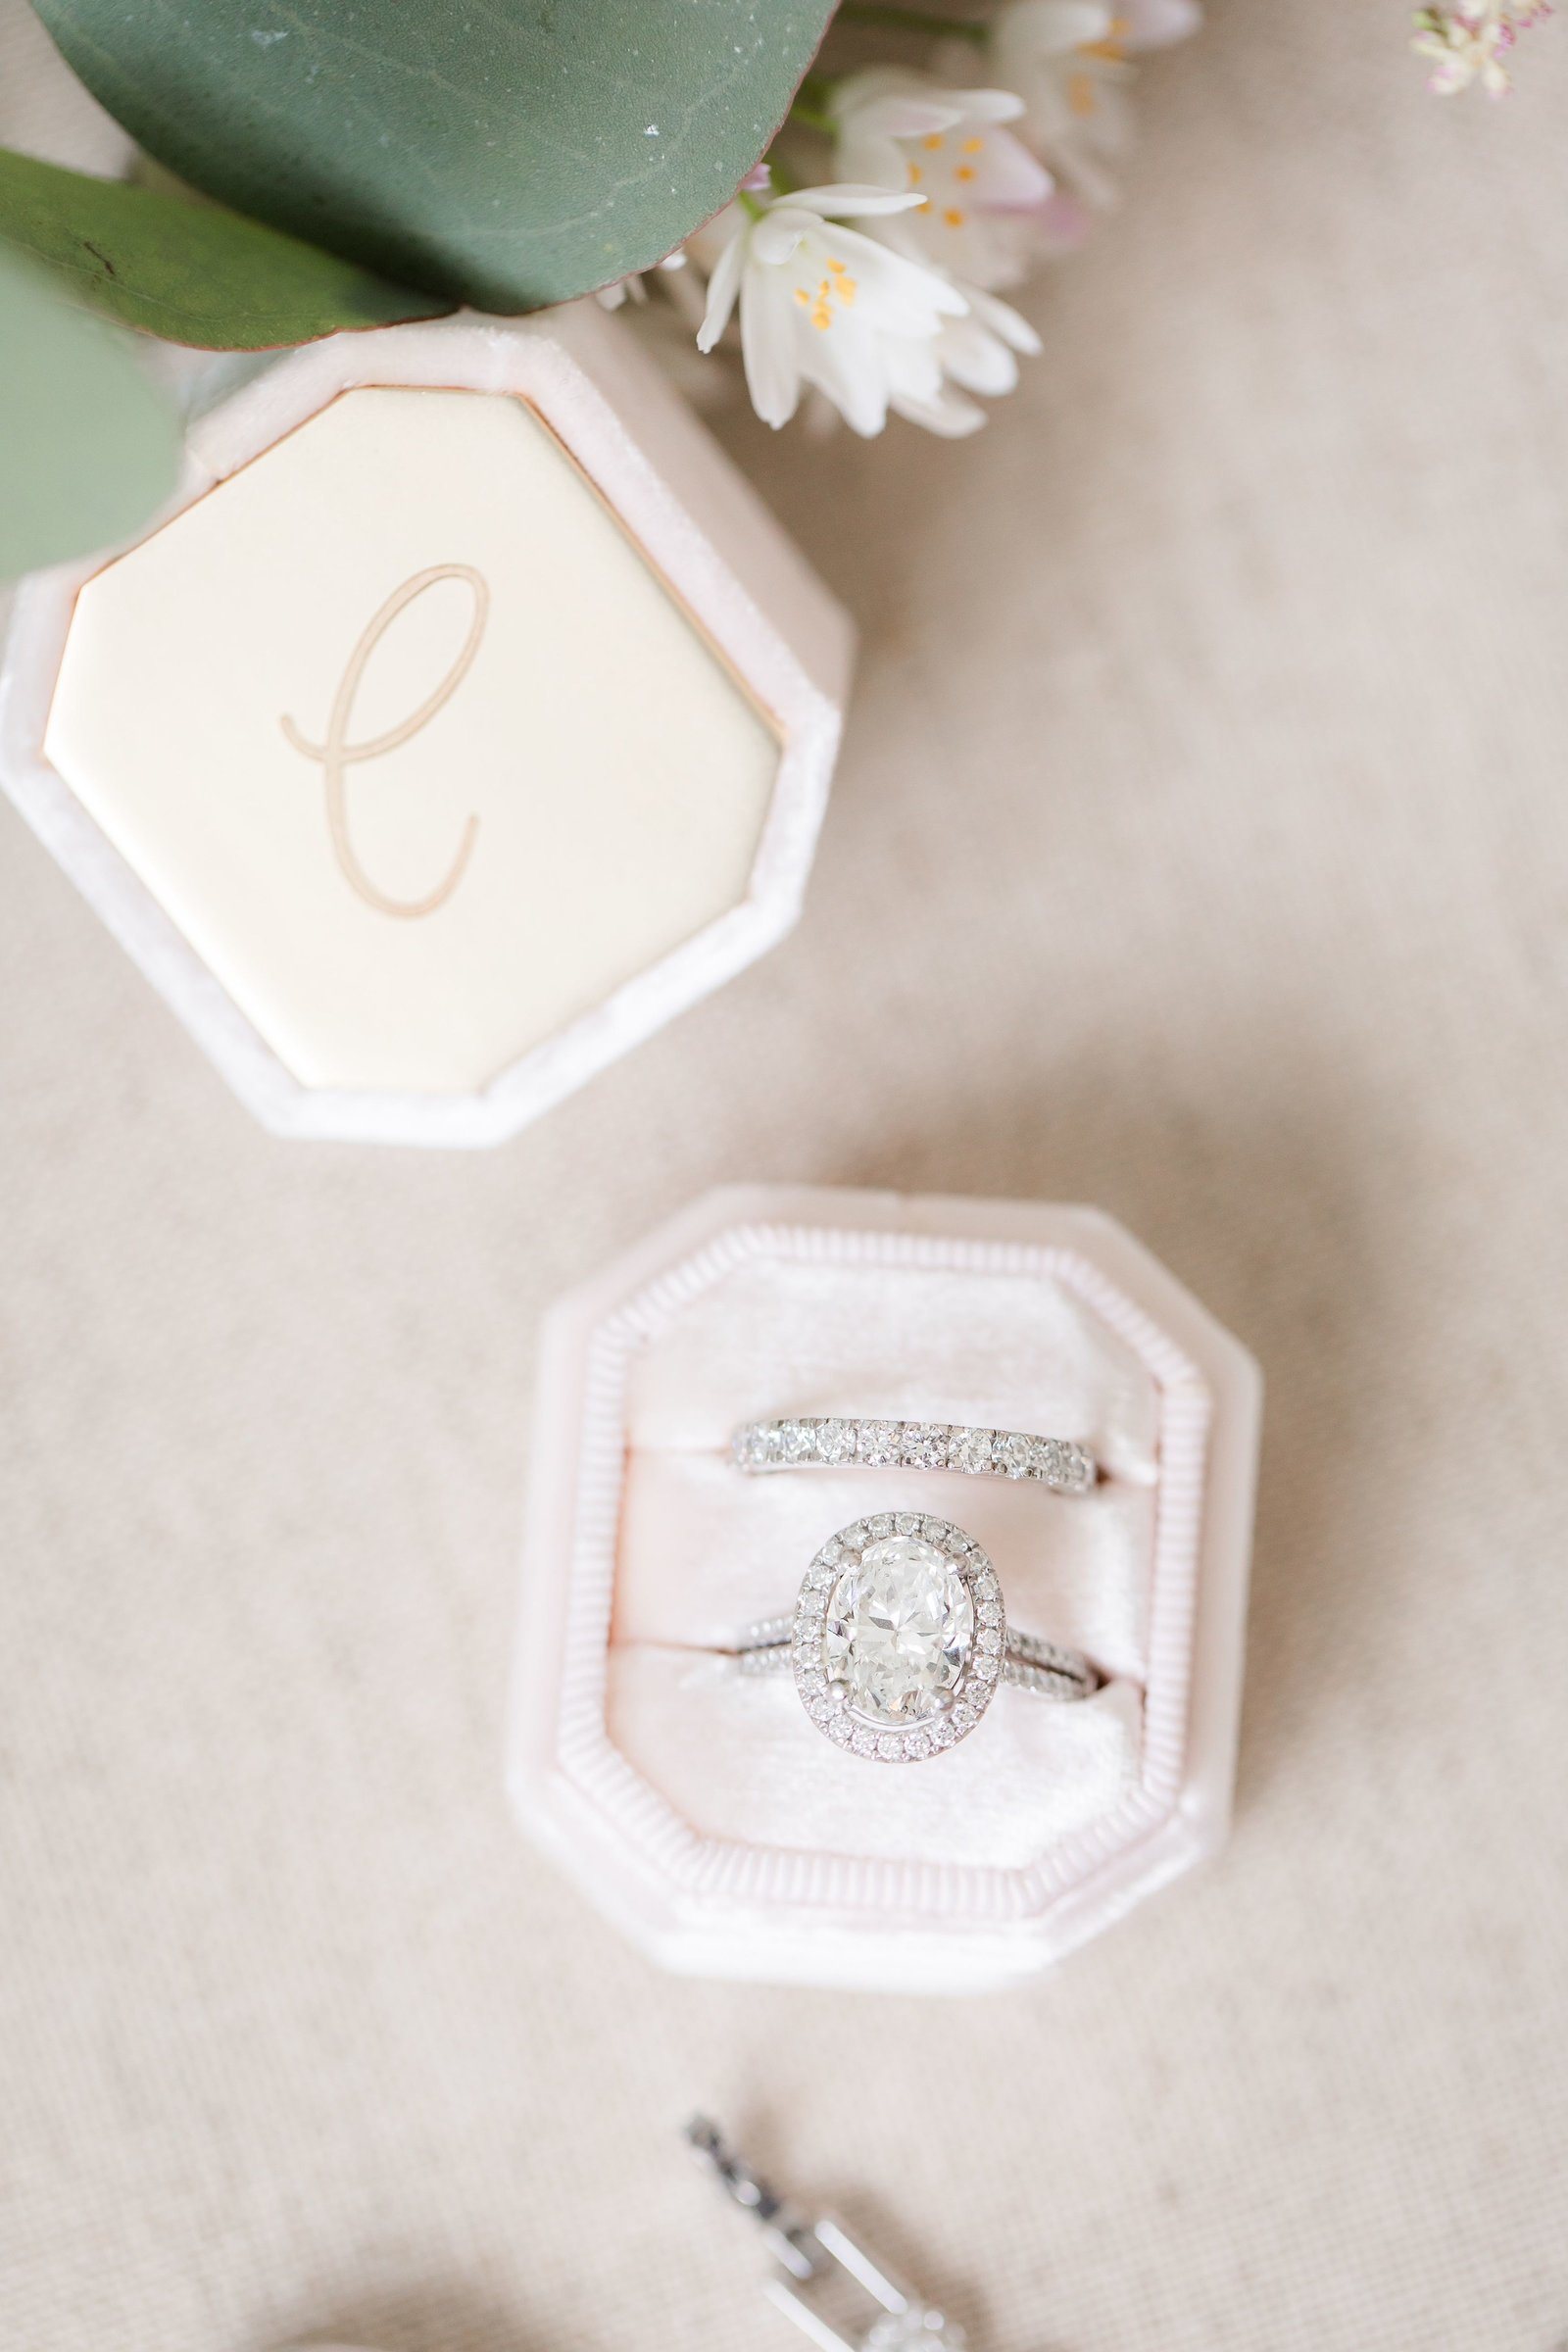 Engagement ring in a Mrs. Box